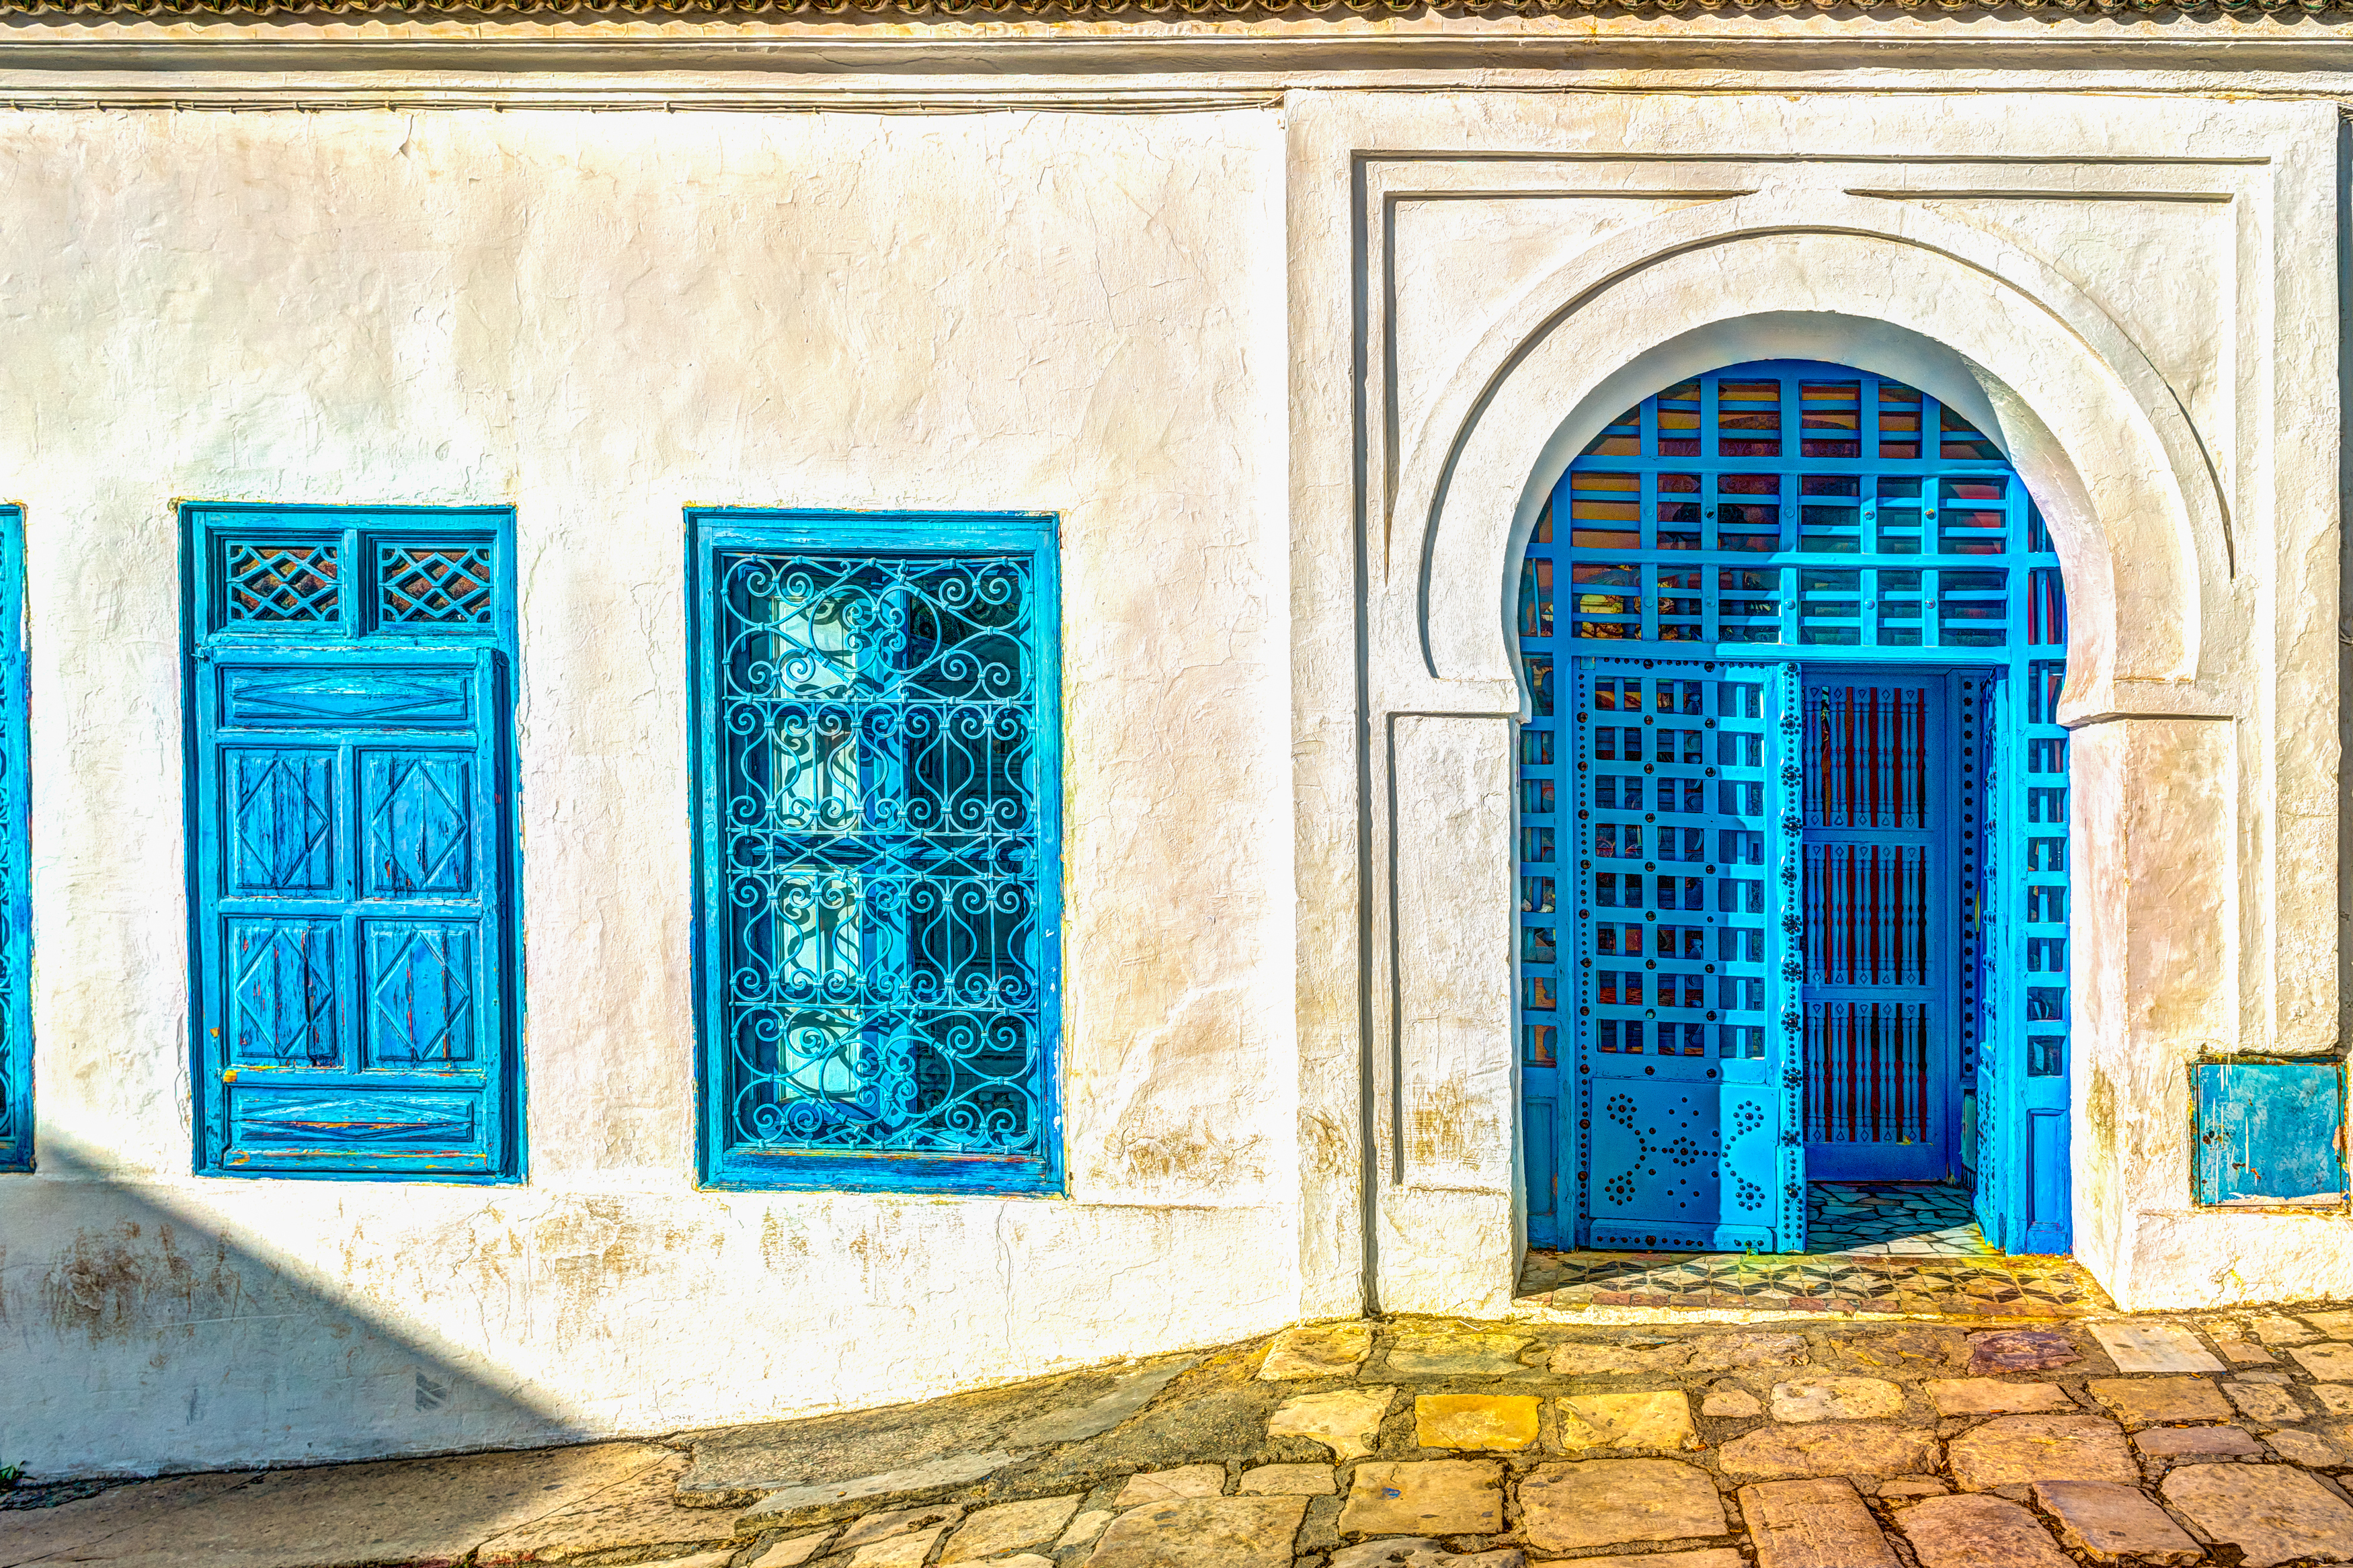 Colourful architecture in Tunisia